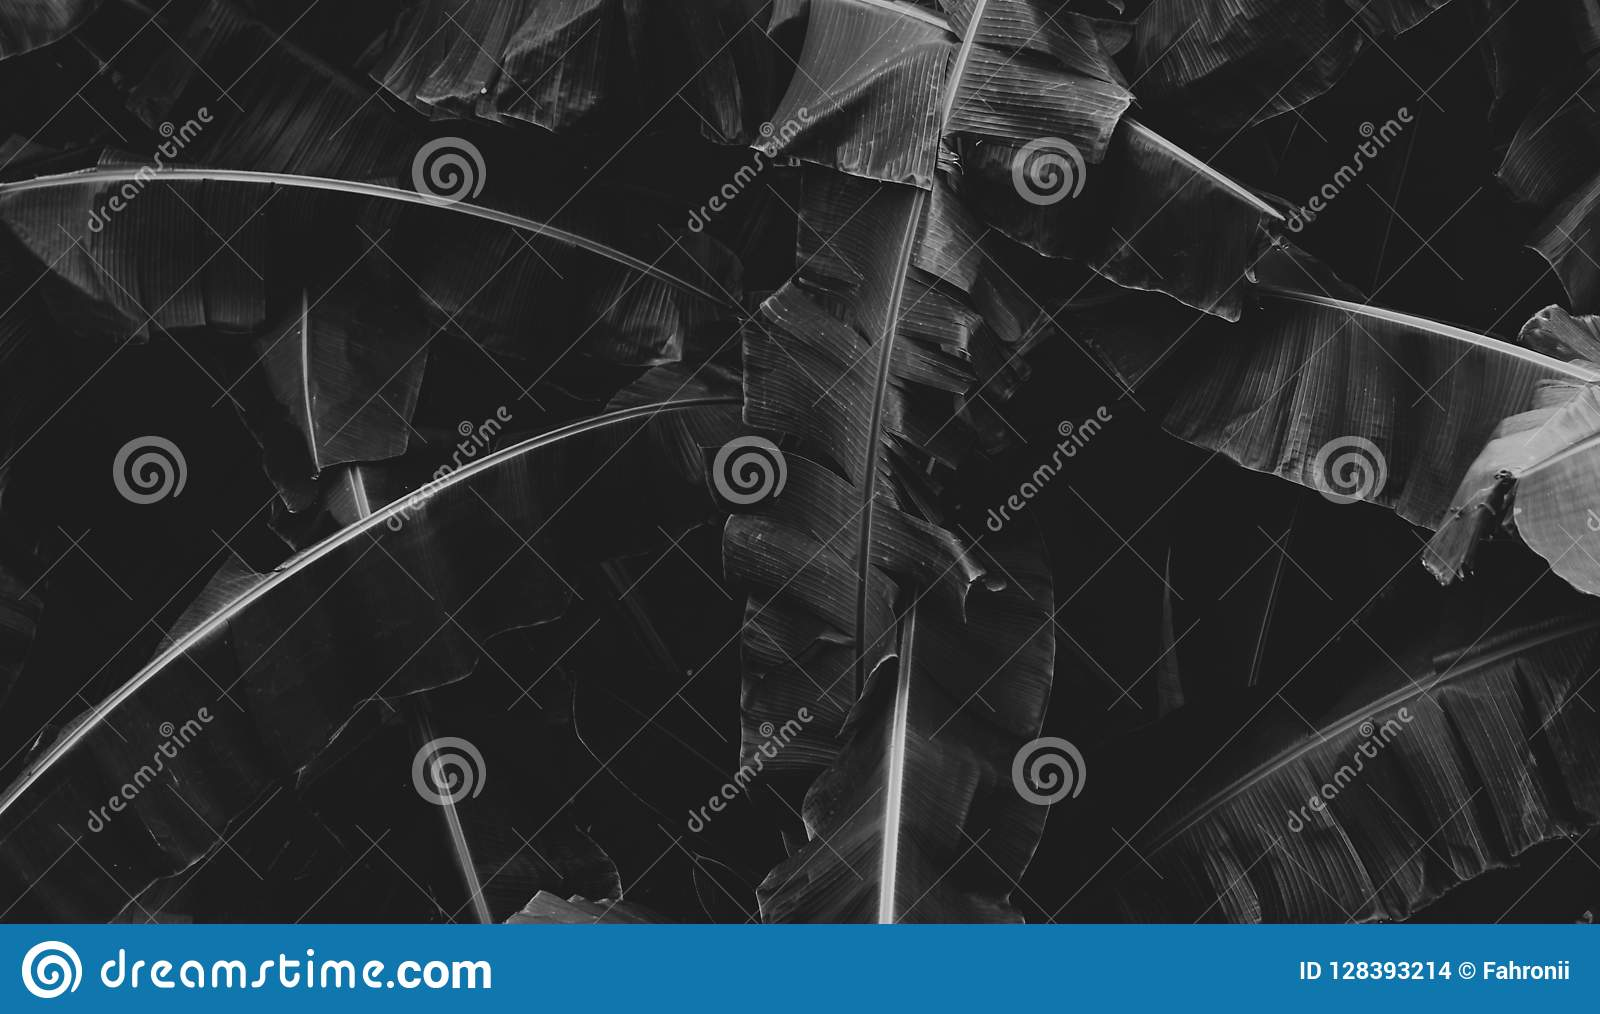 Black and white picture of banana leaves abstract background. Dark tone of leaves in tropical jungle. Foliage nature background